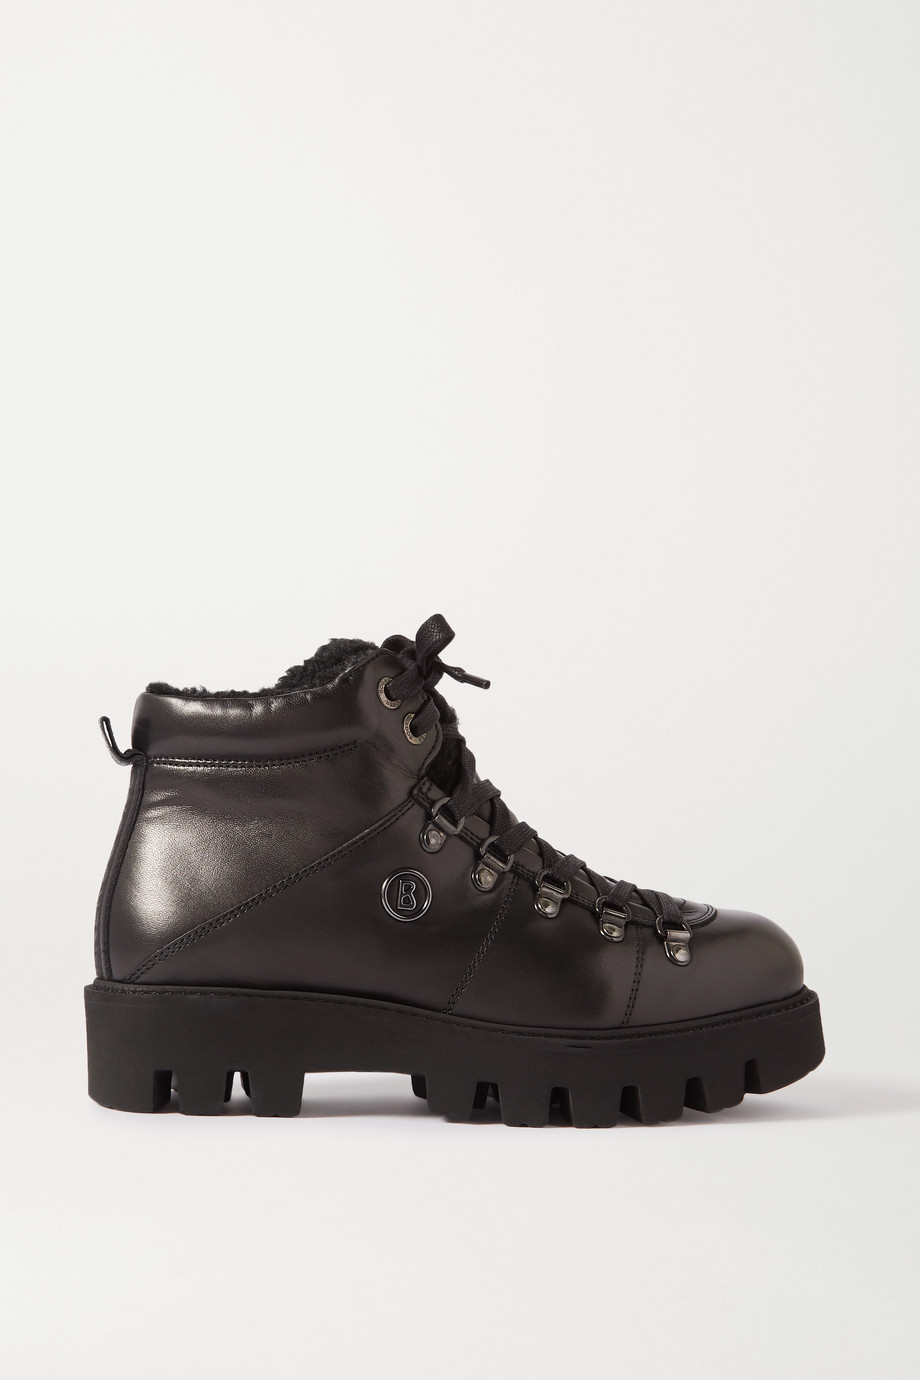 BOGNER Copenhagen shearling-lined leather ankle boots